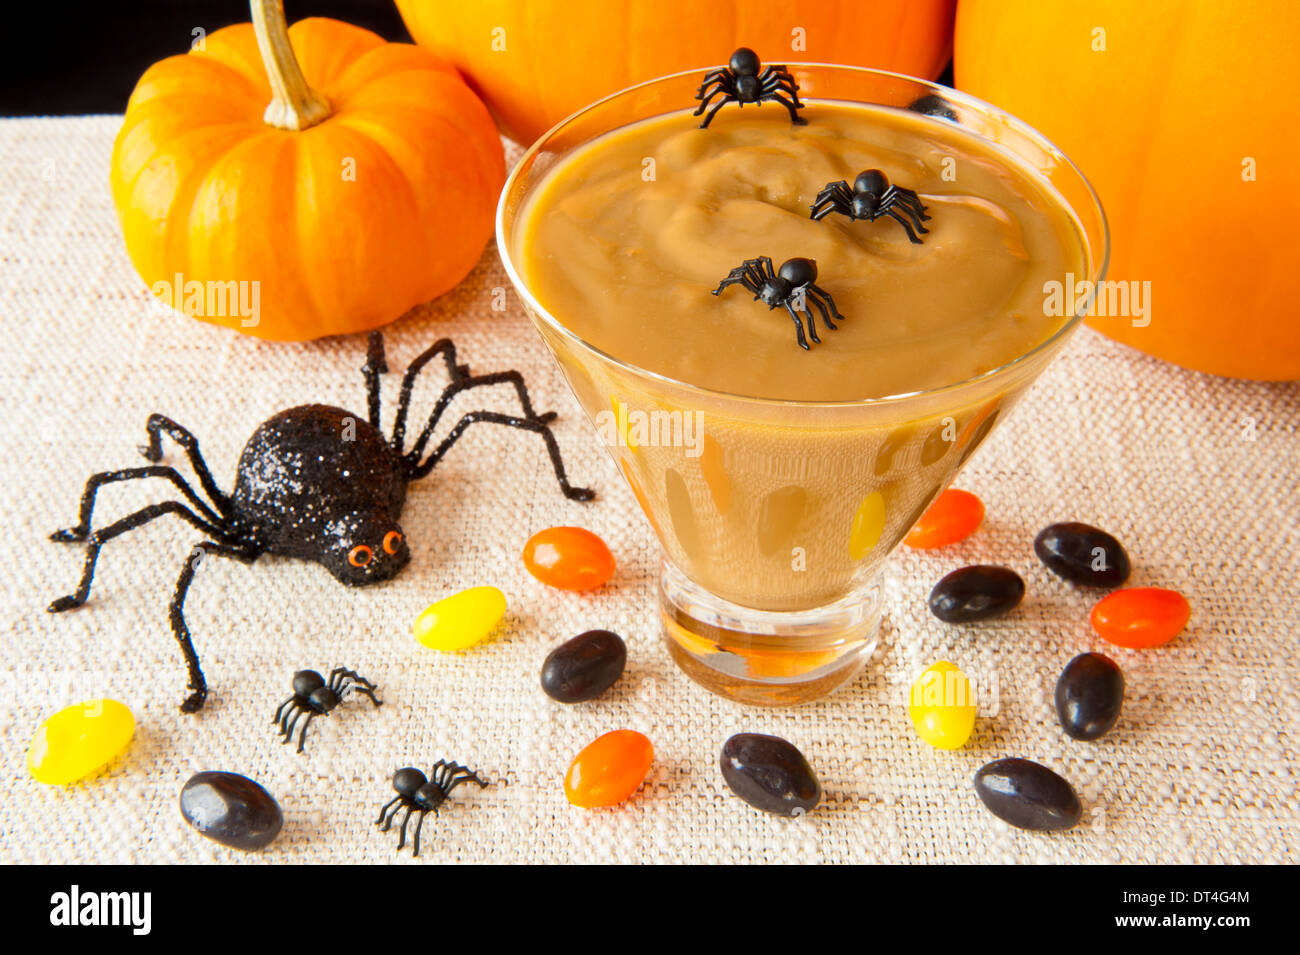 Halloween spiders enjoying a martini glass of butterscotch pudding - Stock Image